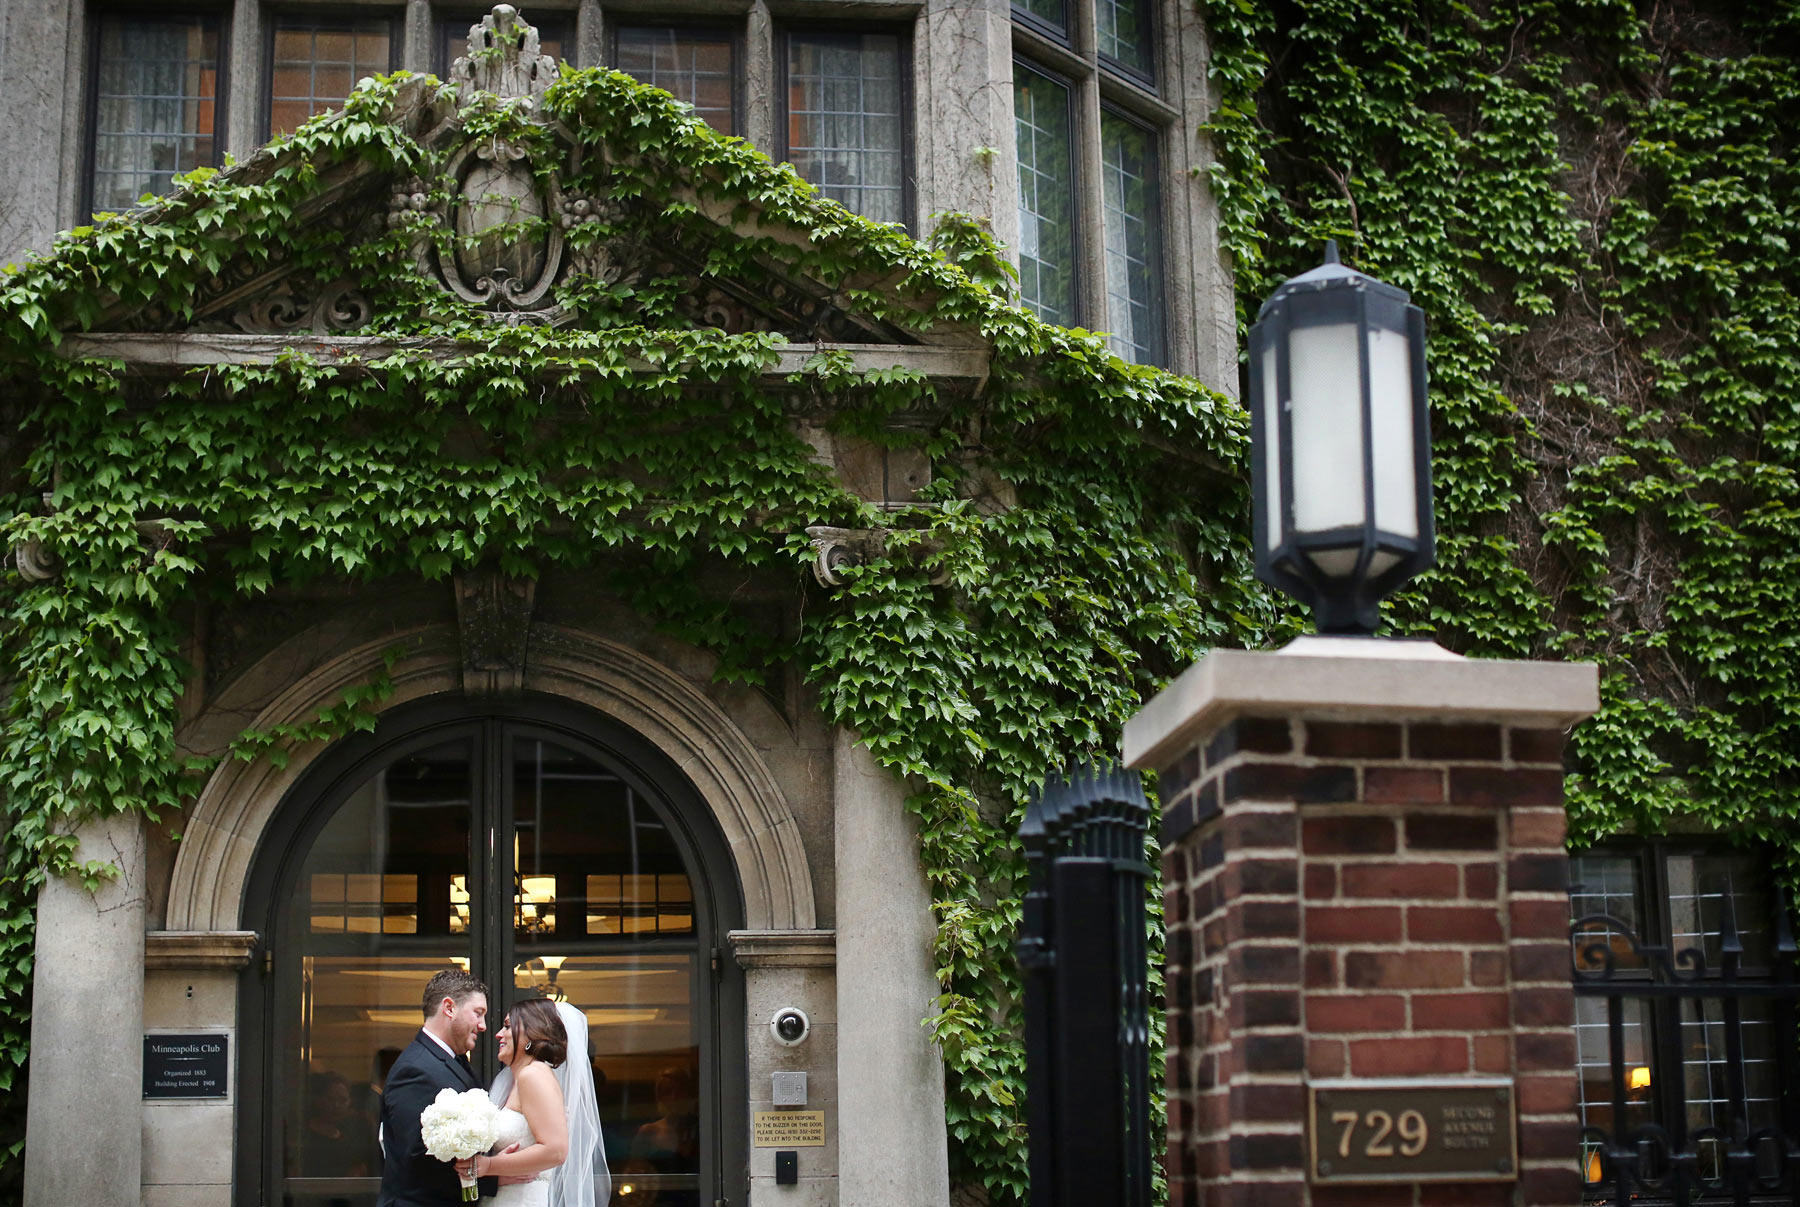 15-Minneapolis-Minnesota-Wedding-Photography-by-Vick-Photography-Downtown-The-Minneapolis-Club-Megan-and-Andrew.jpg